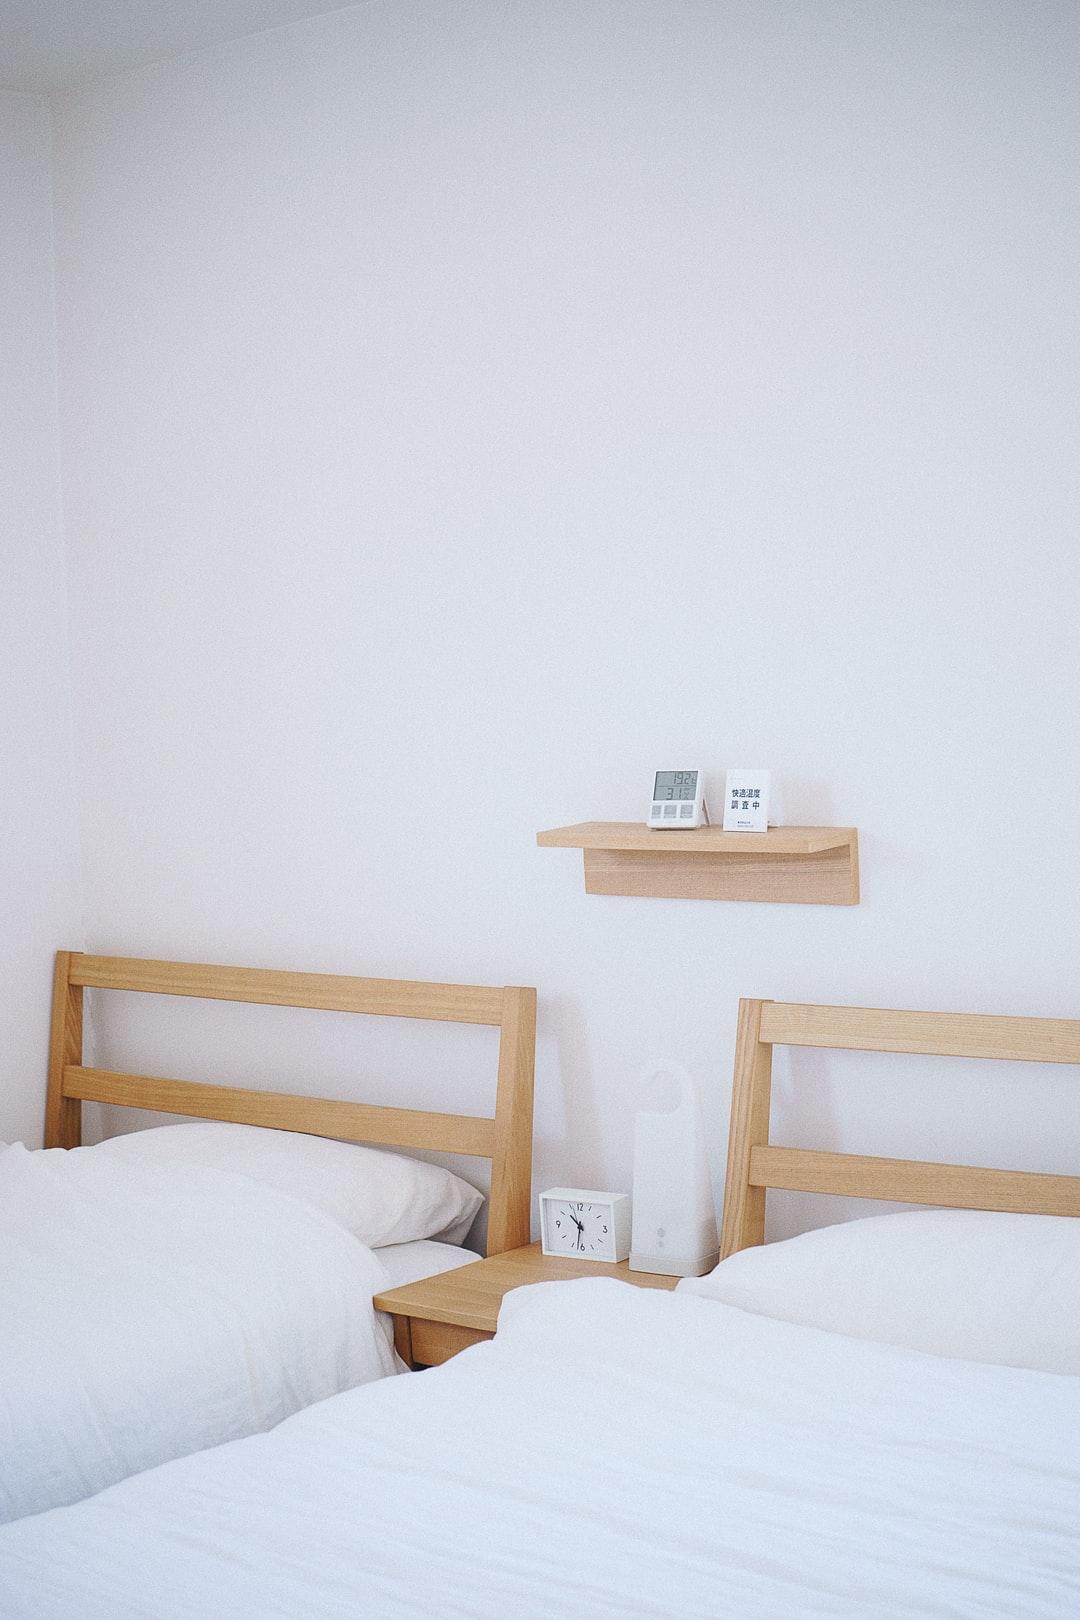 What Are the Benefits of Living in a Sober Living House?